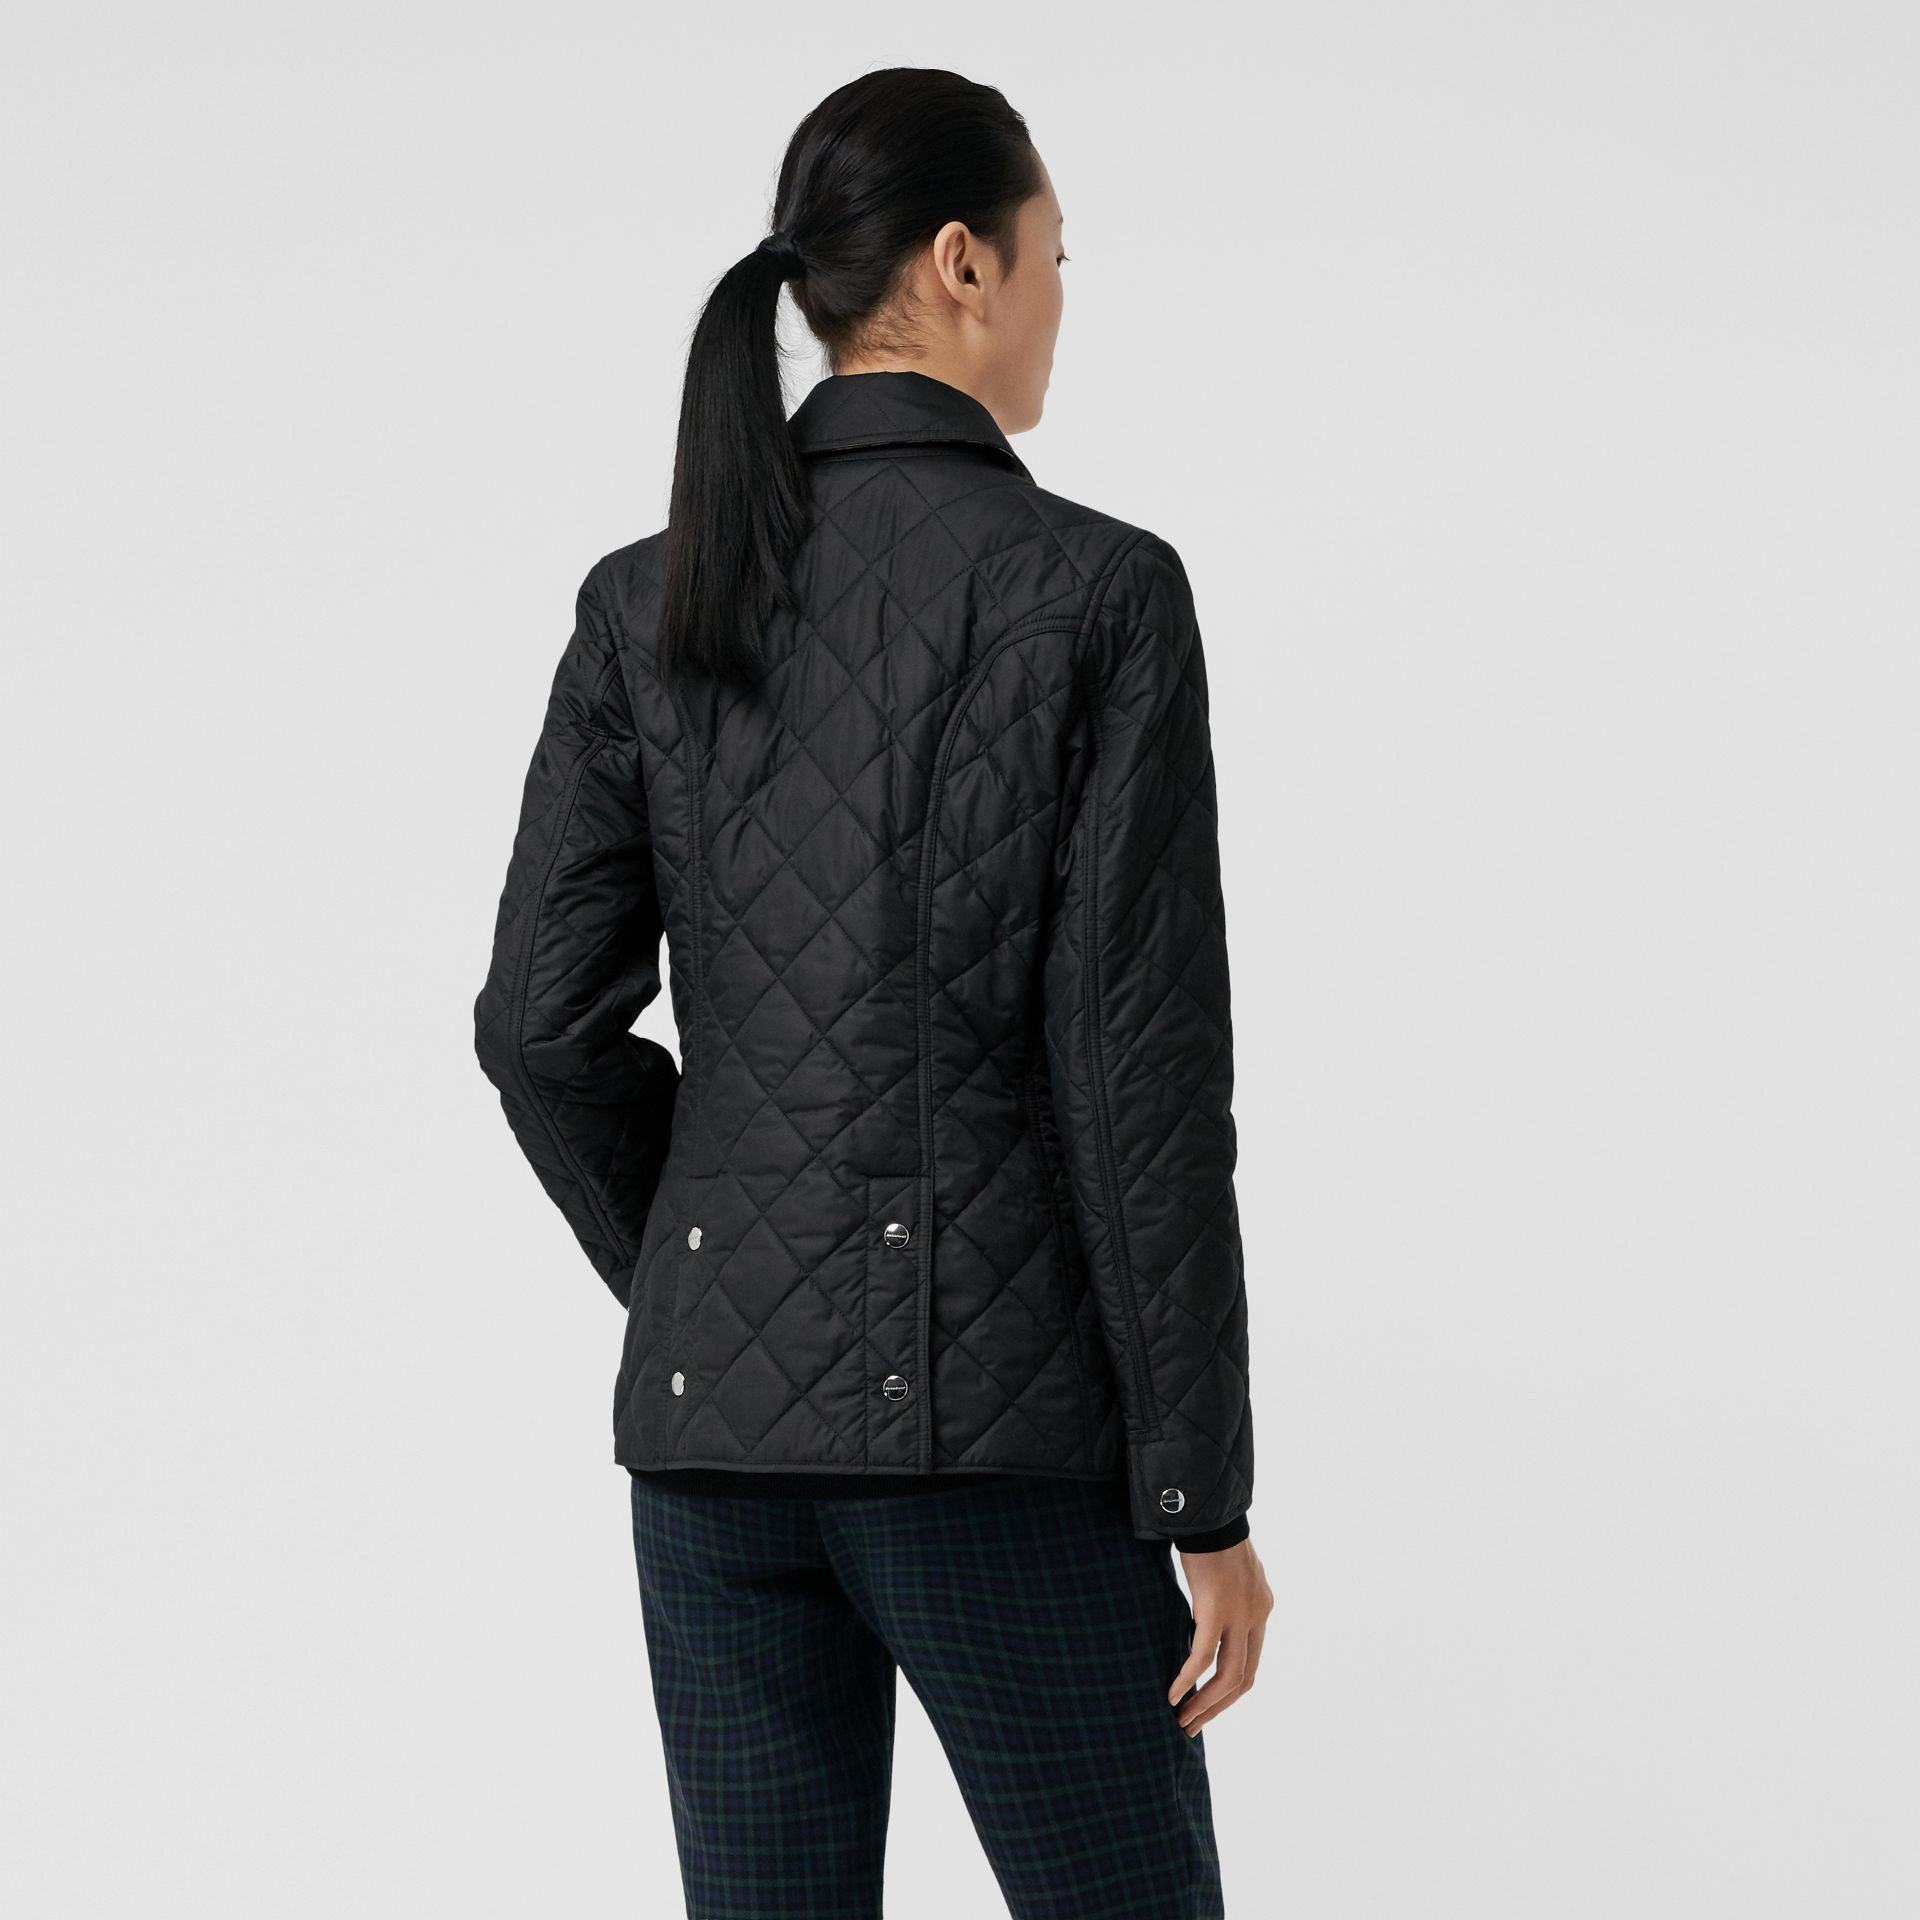 Embroidered Crest Diamond Quilted Jacket in Black - Women | Burberry - gallery image 2